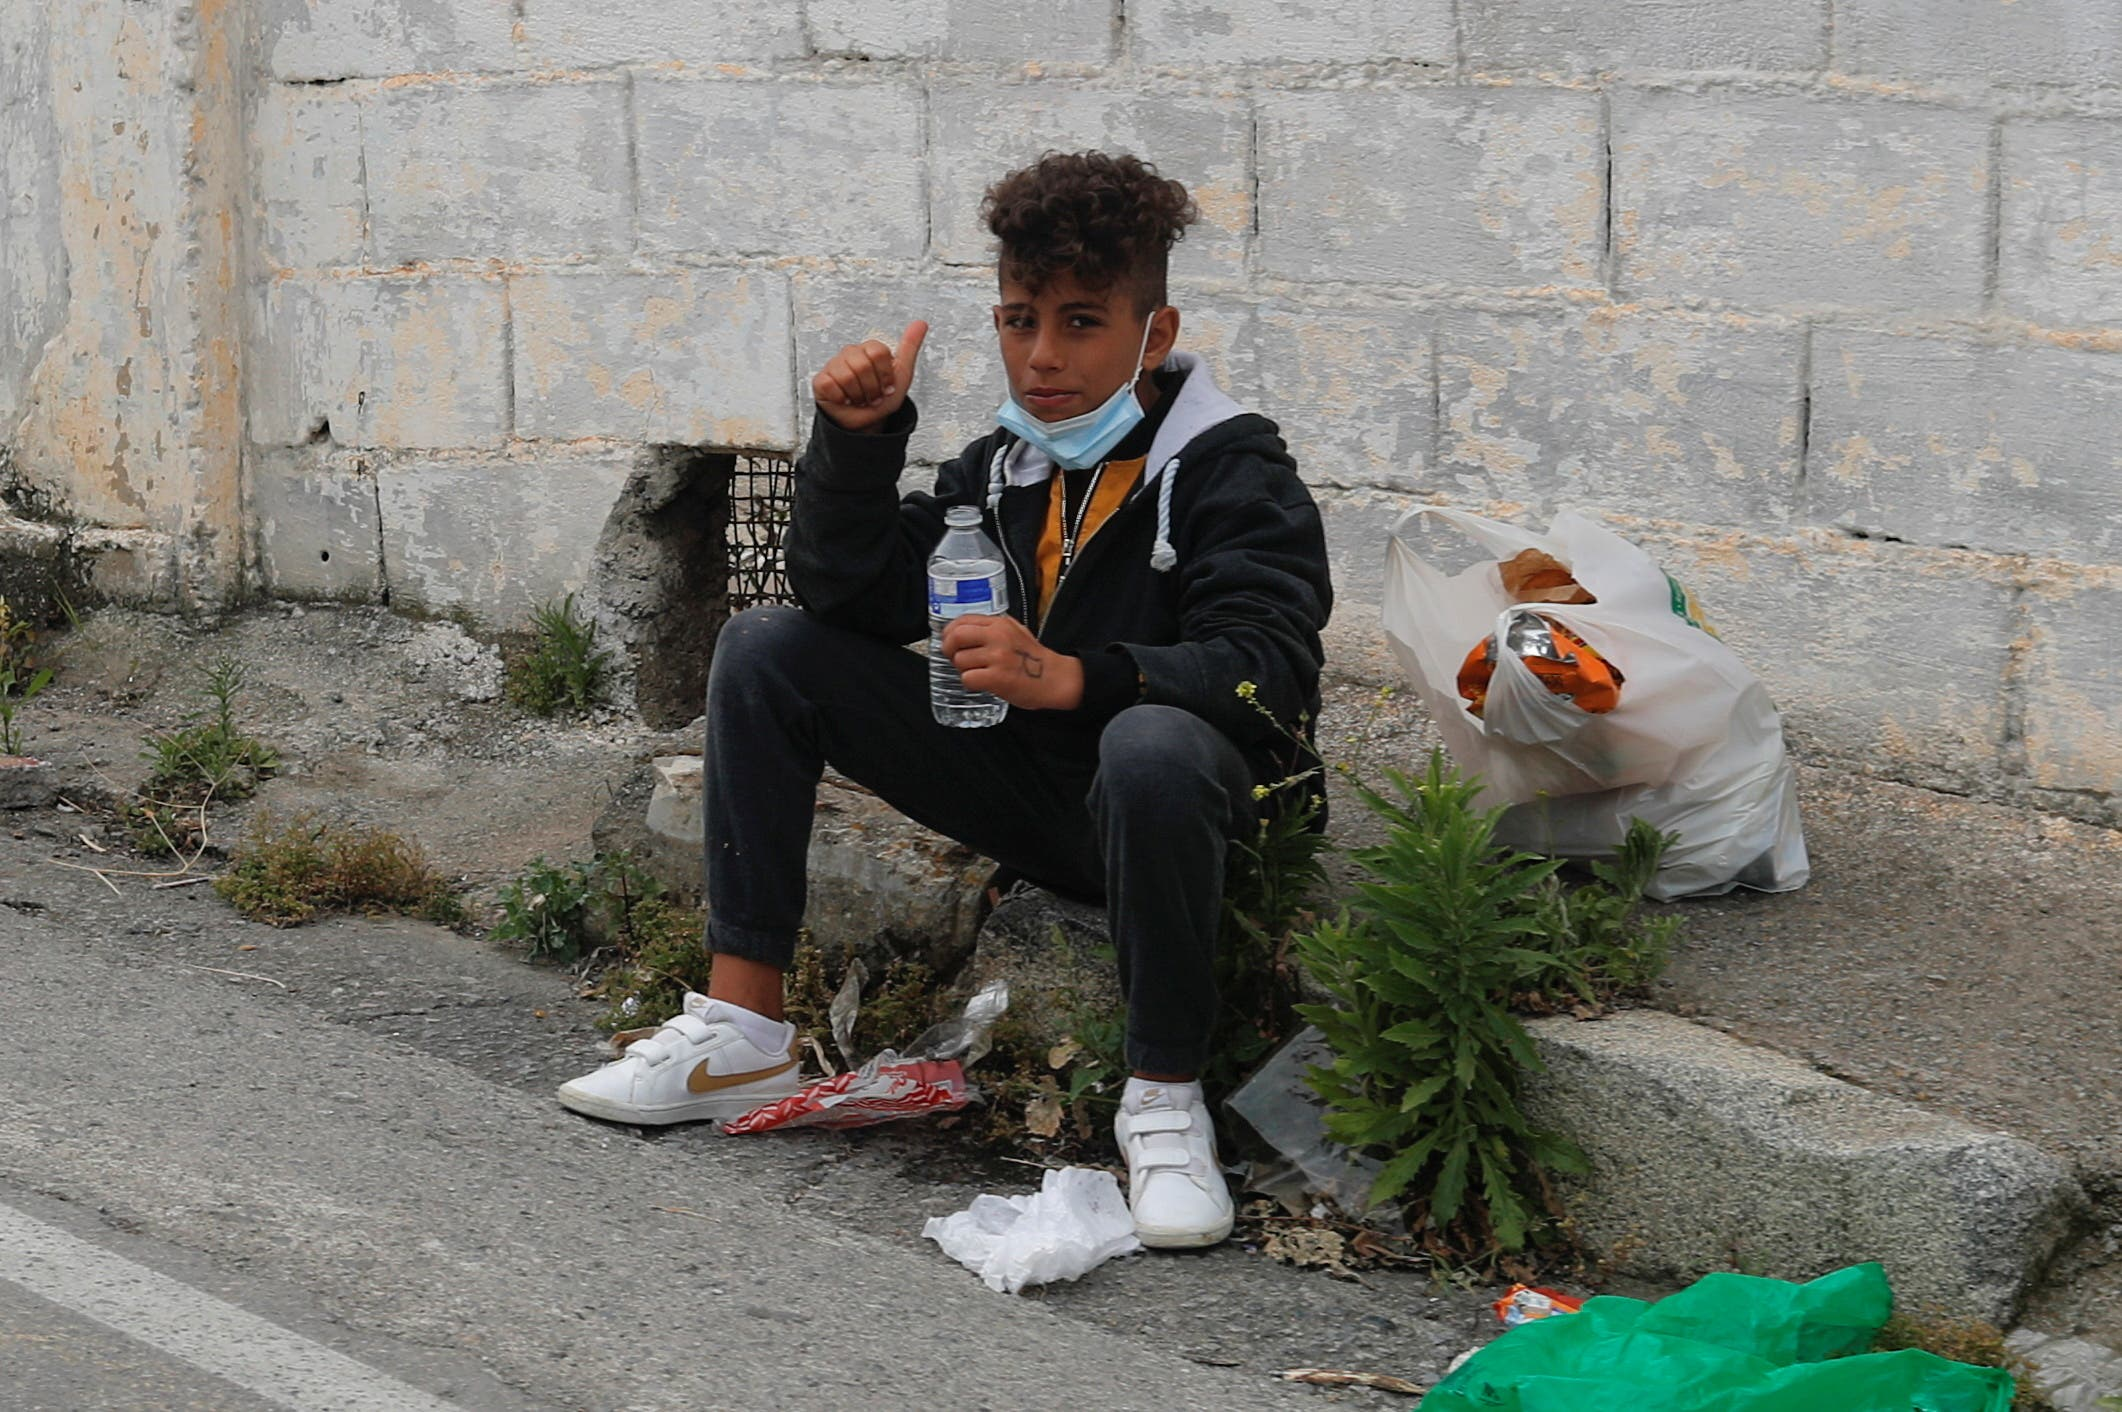 A migrant minor sits by the road after refusing to enter a facility prepared for migrants, near the Spanish-Moroccan border, after thousands of migrants swam across this border during the last days, in Ceuta, Spain, May 21, 2021. (Reuters/Jon Nazca)